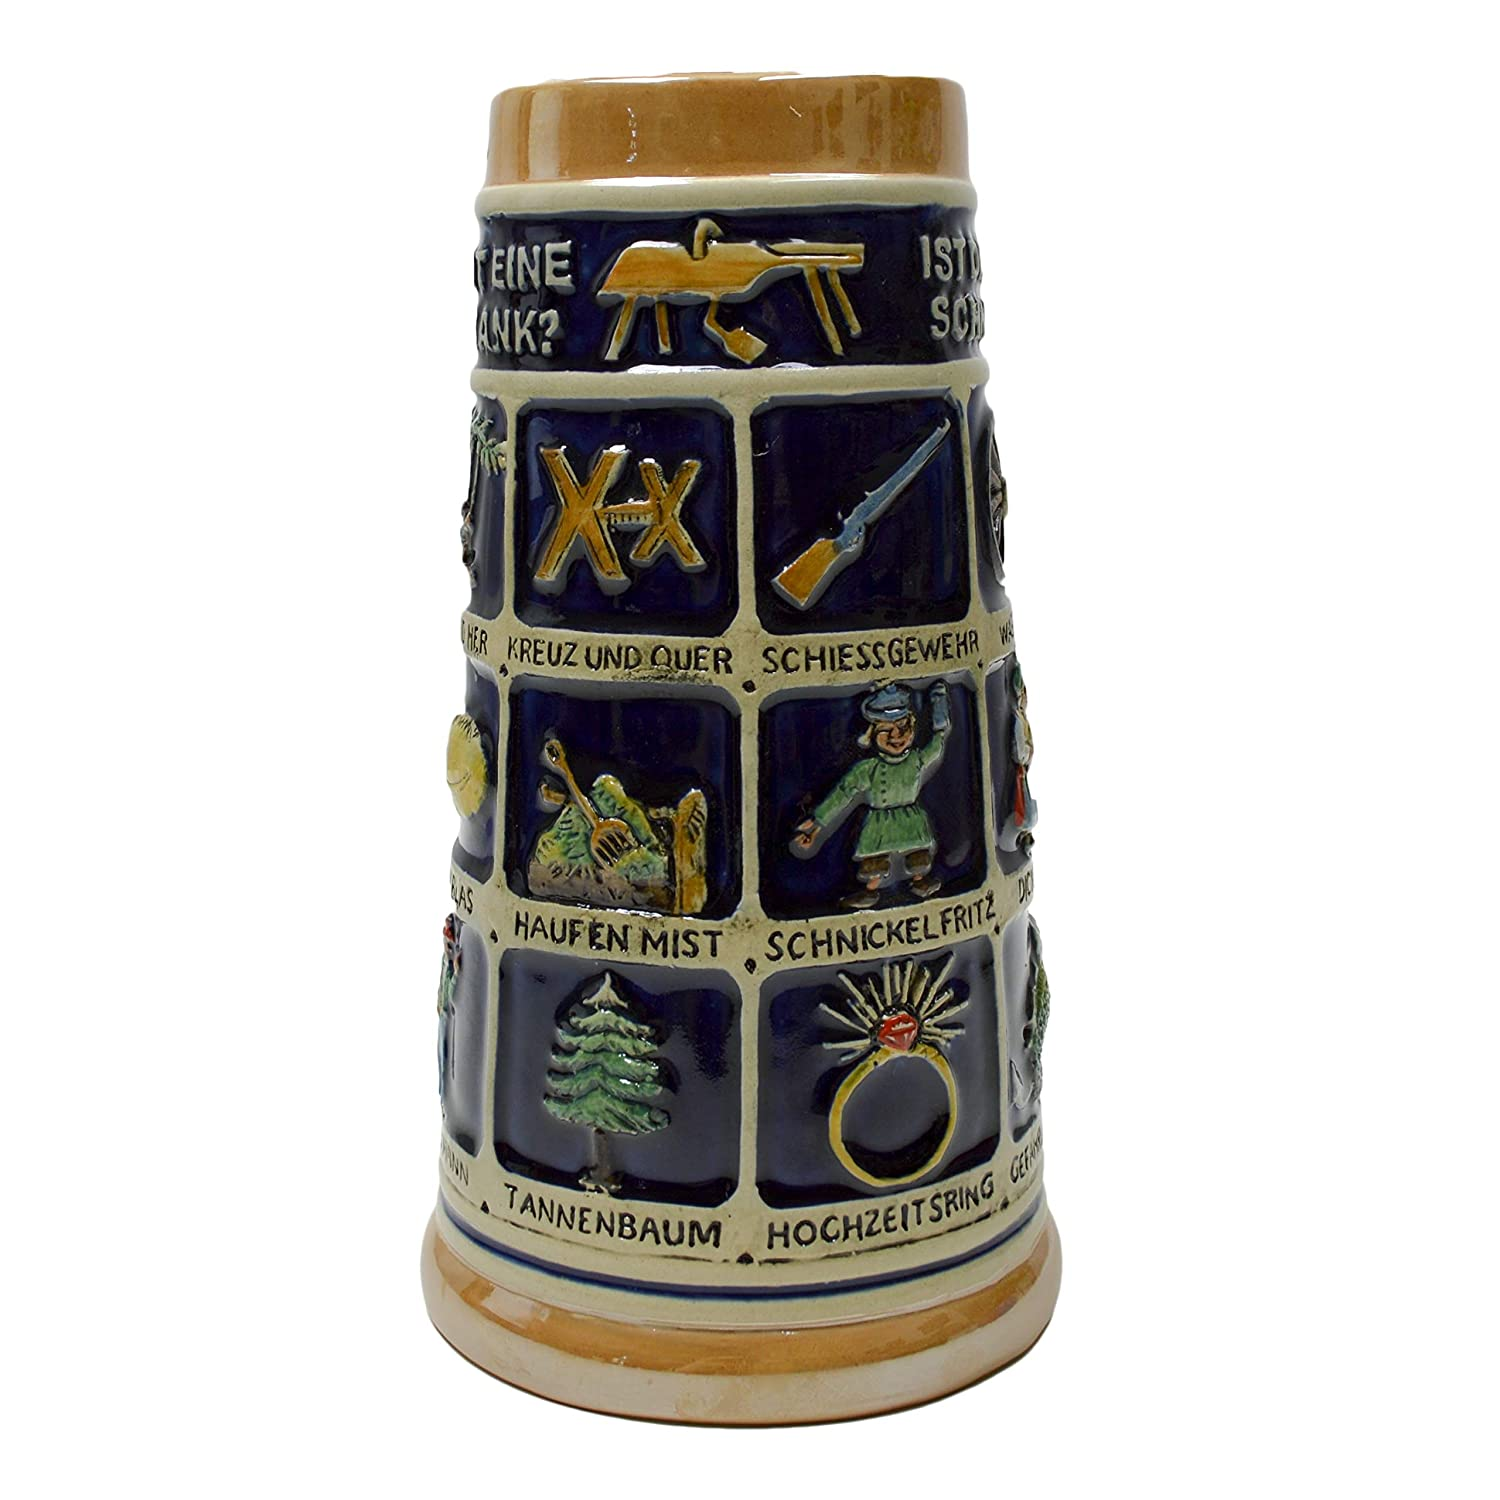 German Schnitzelbank Song .9 Liter Beer Mug Beer Stein Essence of Europe Gifts E.H.G S4512